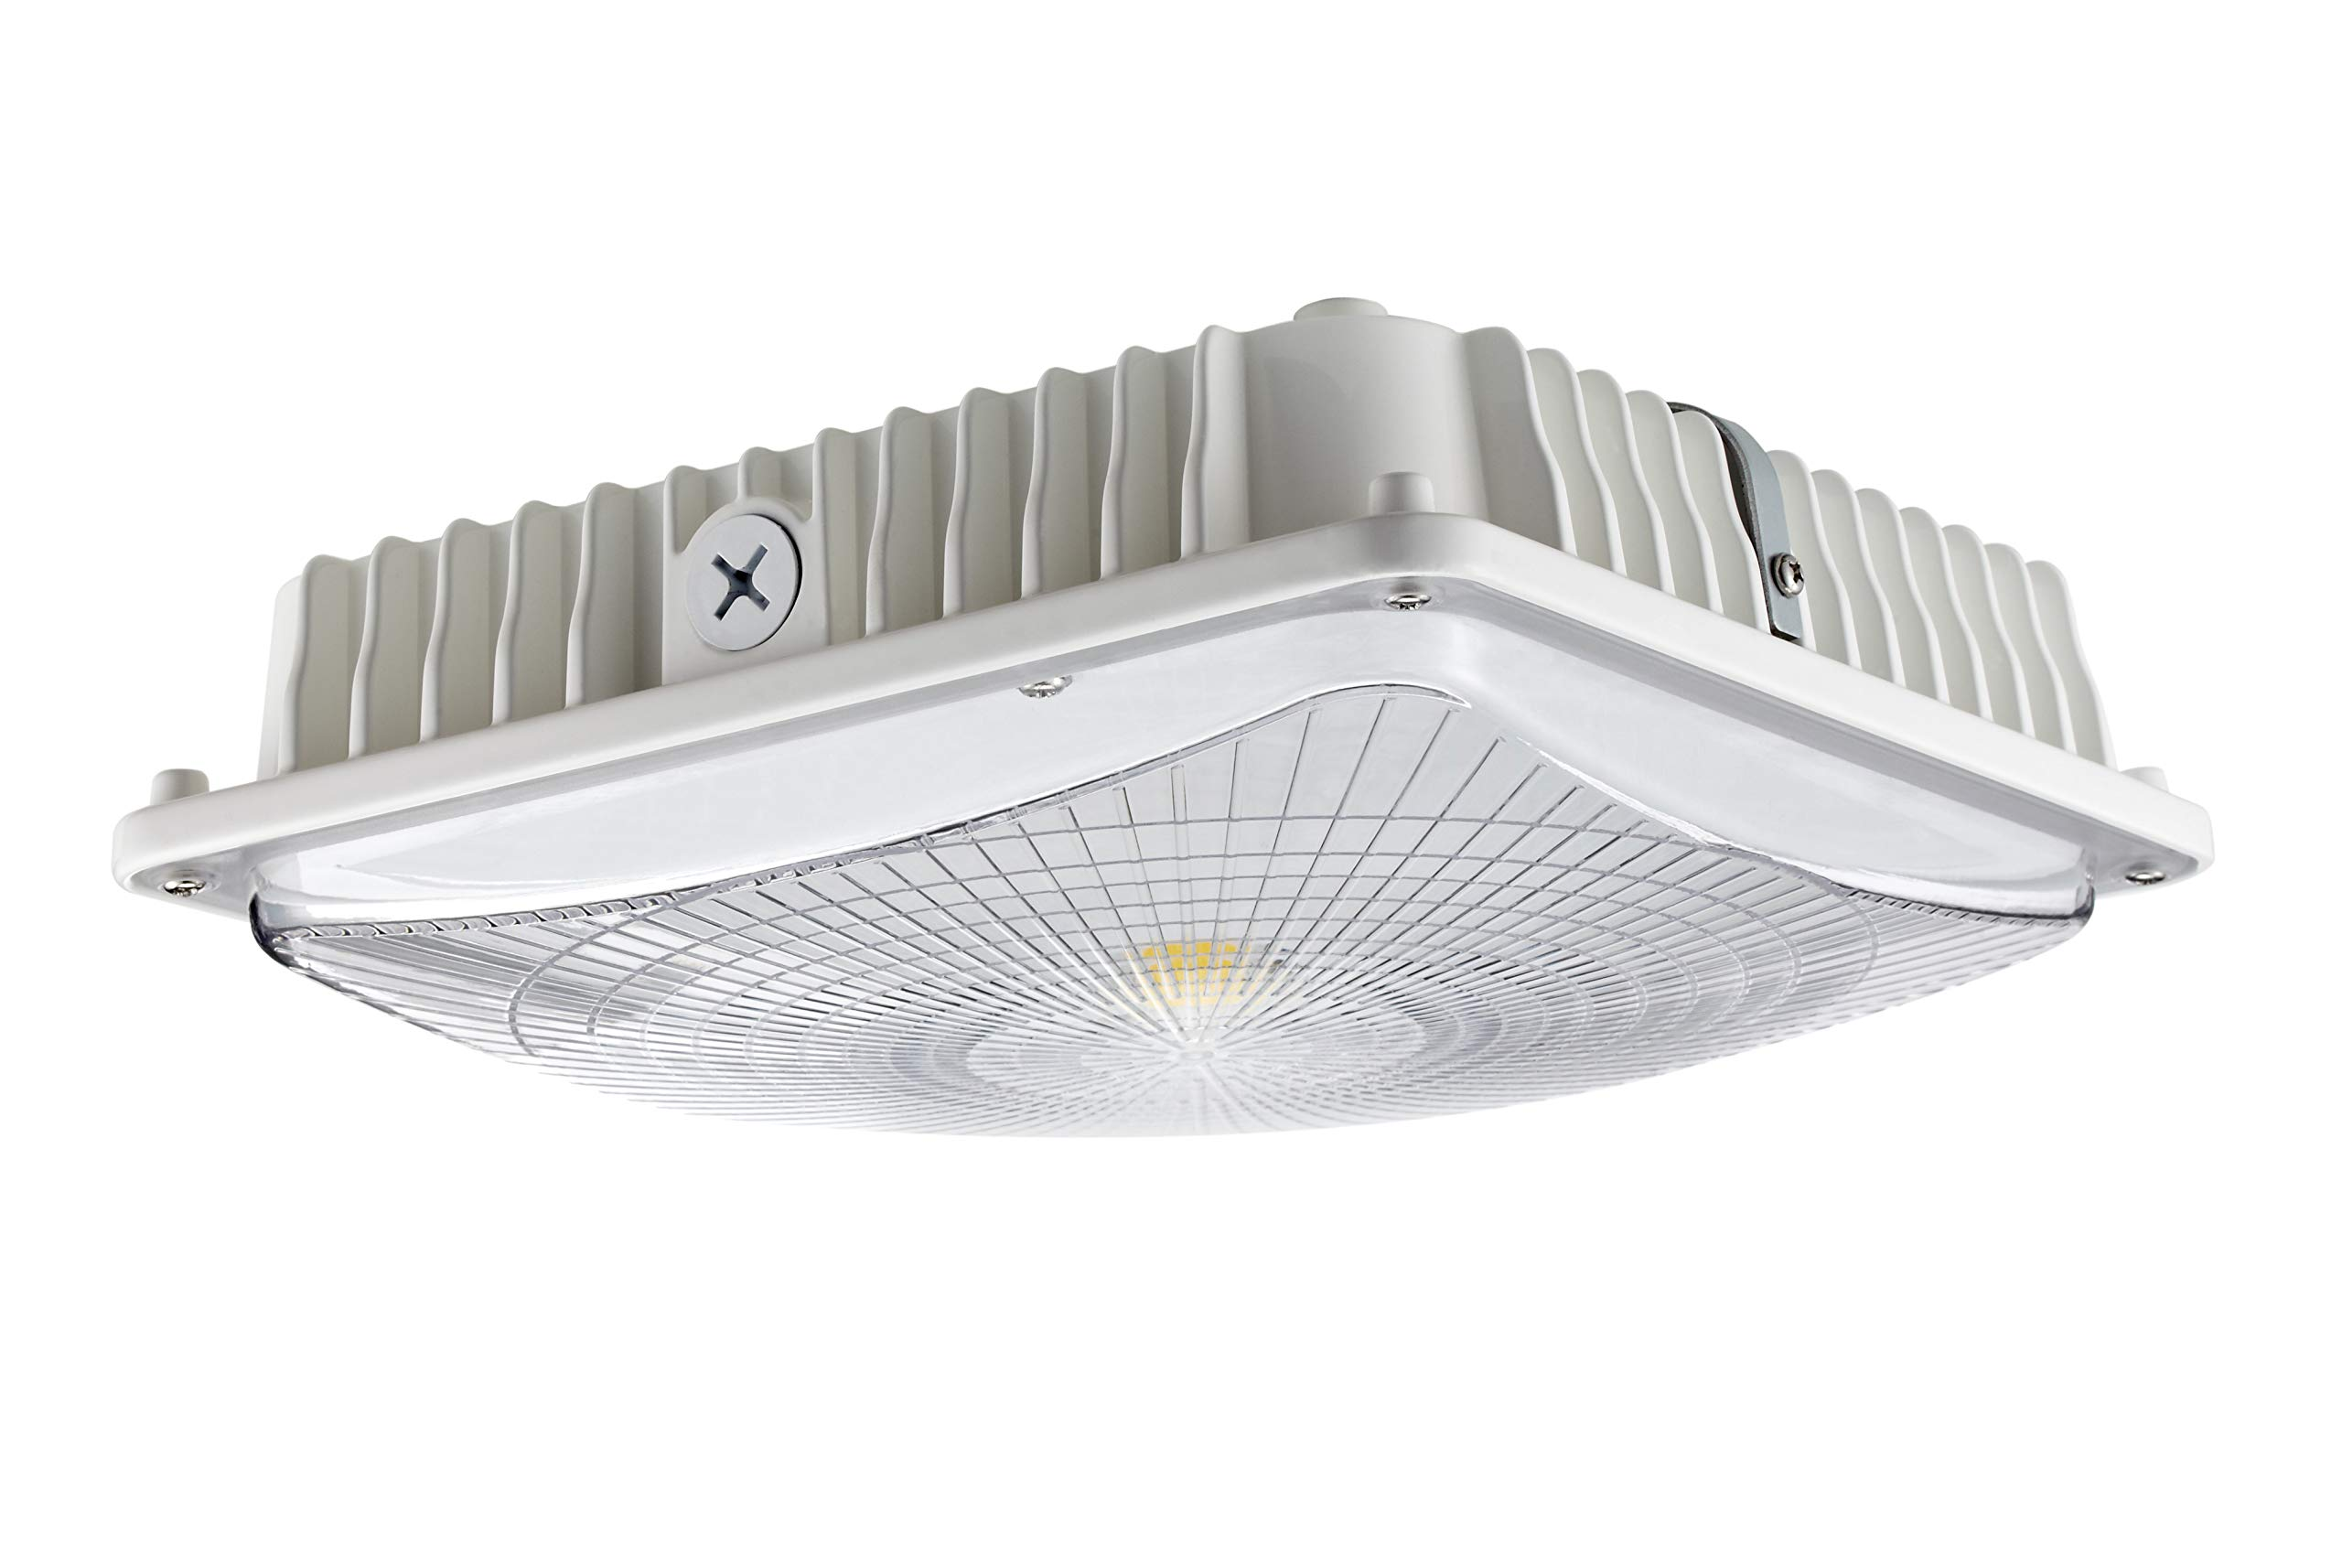 GKOLED 65W White LED Canopy Light, 300-350W MH/HPS/HID Replacement, 5000K Daylight White, 6600Lumen, 120-277VAC, IP65 Waterproof and Outdoor Rated, UL-Listed and DLC-Qualified, 5 Years Warranty